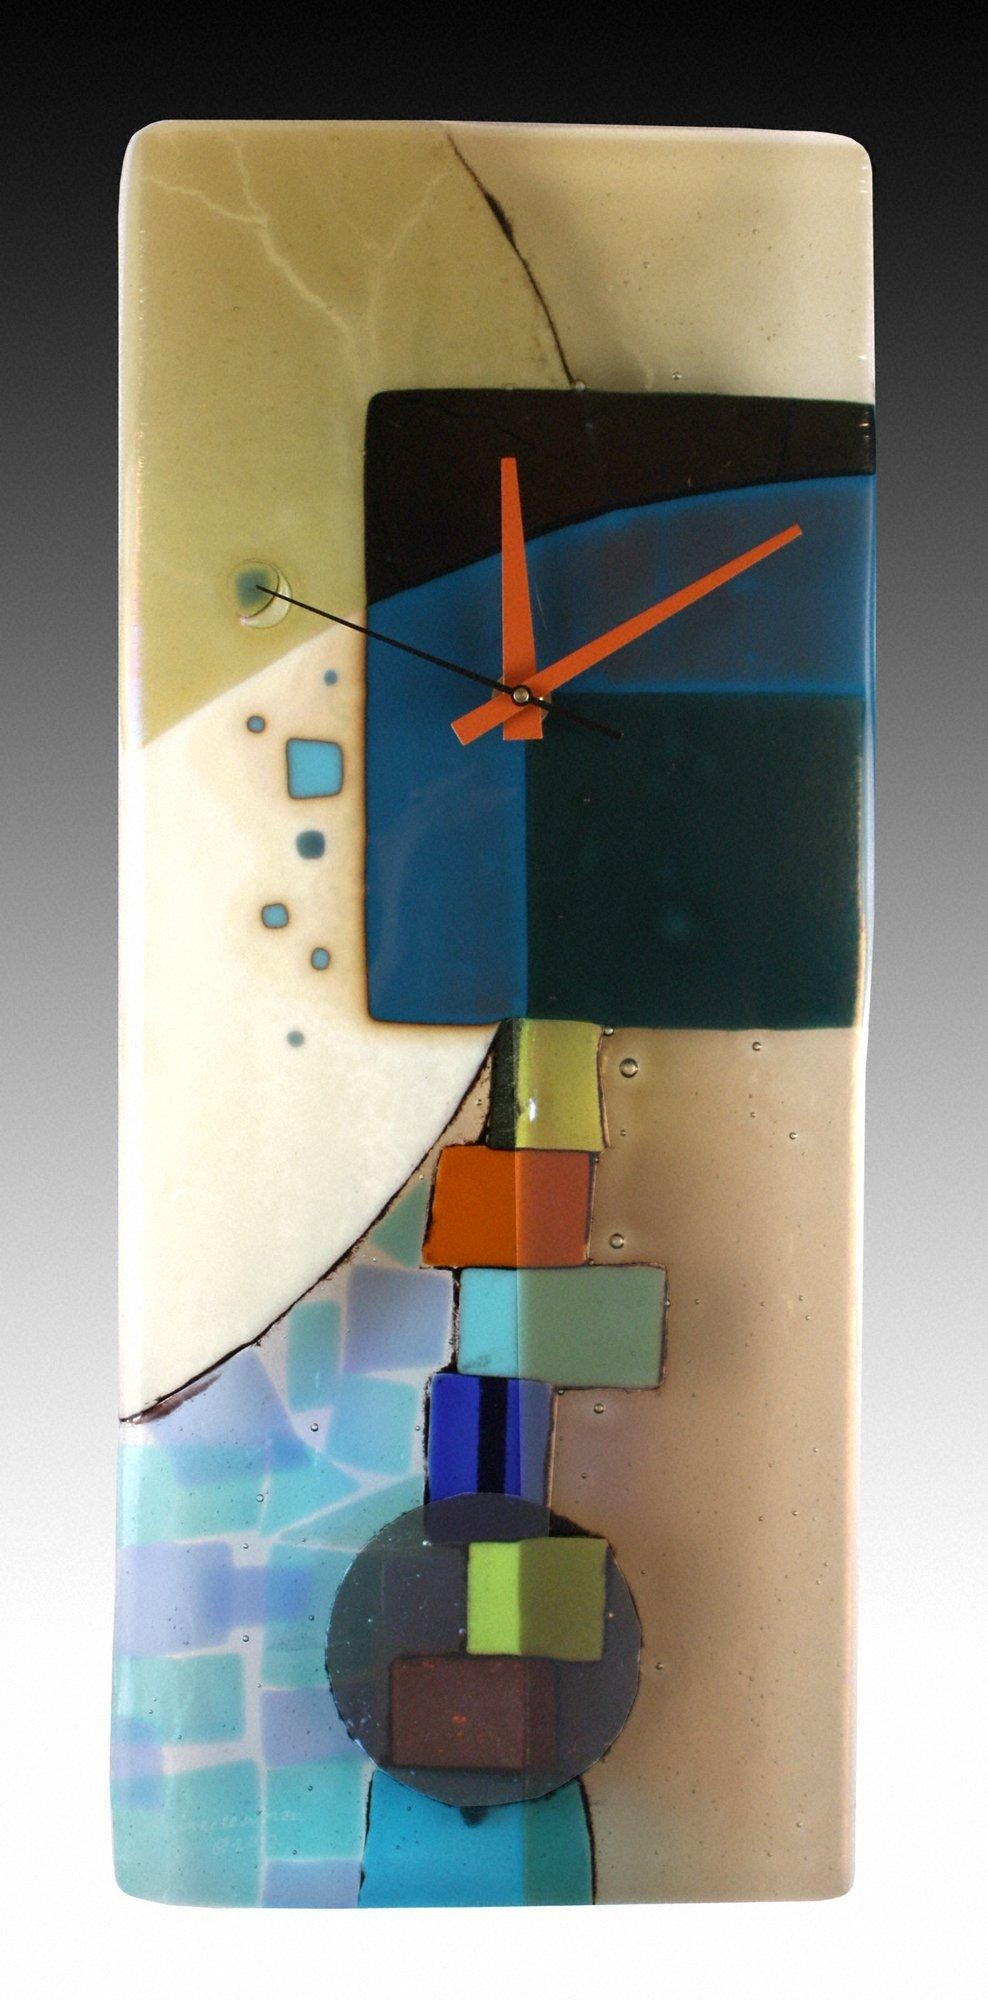 Andrea Fused Glass Pendulum Clocknina Cambron (Art Glass Clock Throughout Fused Glass Wall Art For Sale (View 13 of 20)